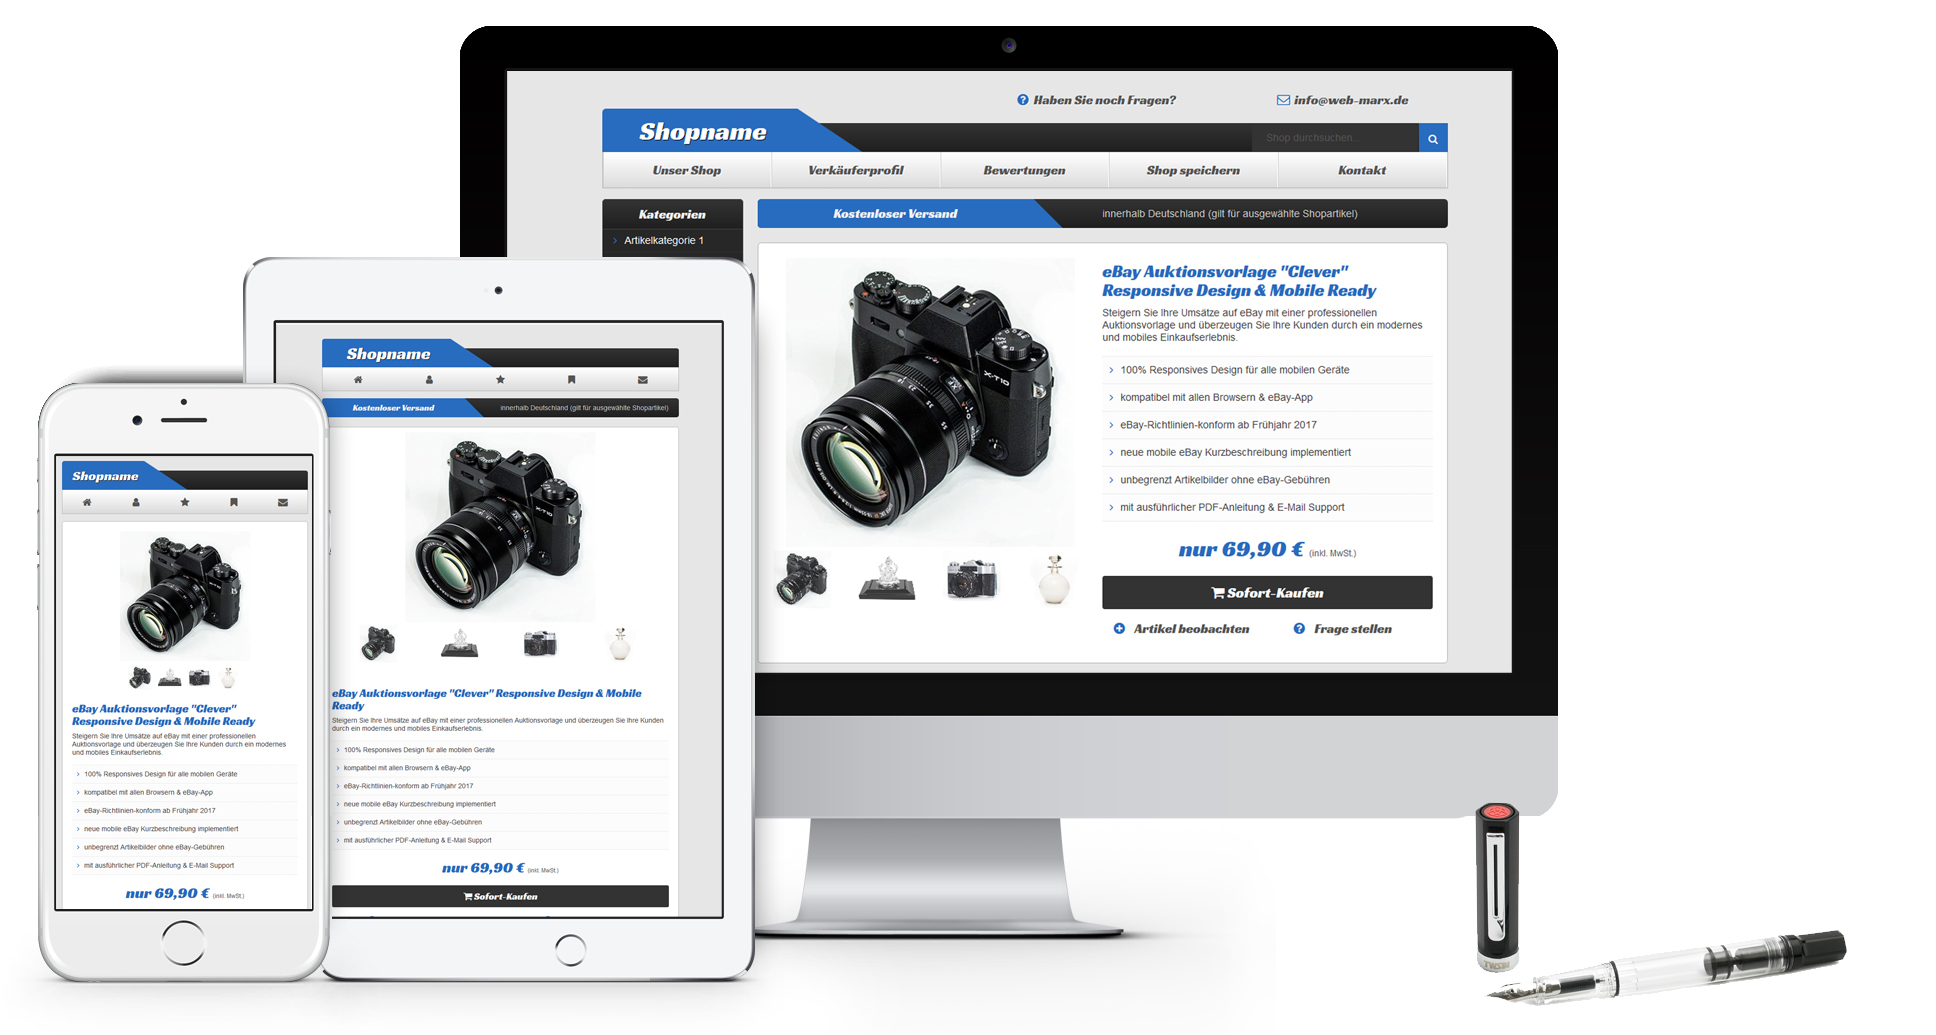 eBay Template Clever Responsive Mobile